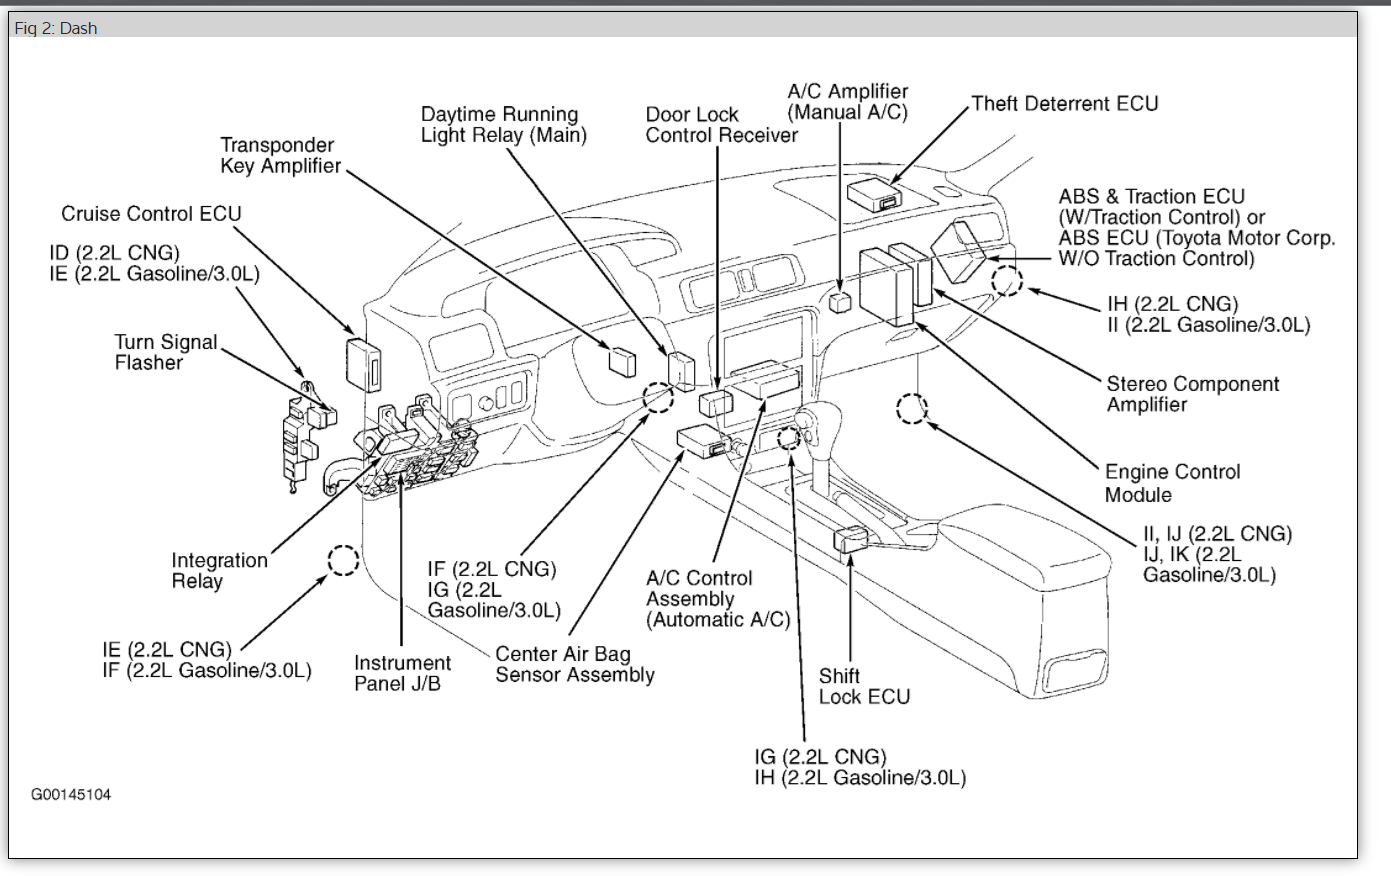 2012 camry tail light wiring diagram